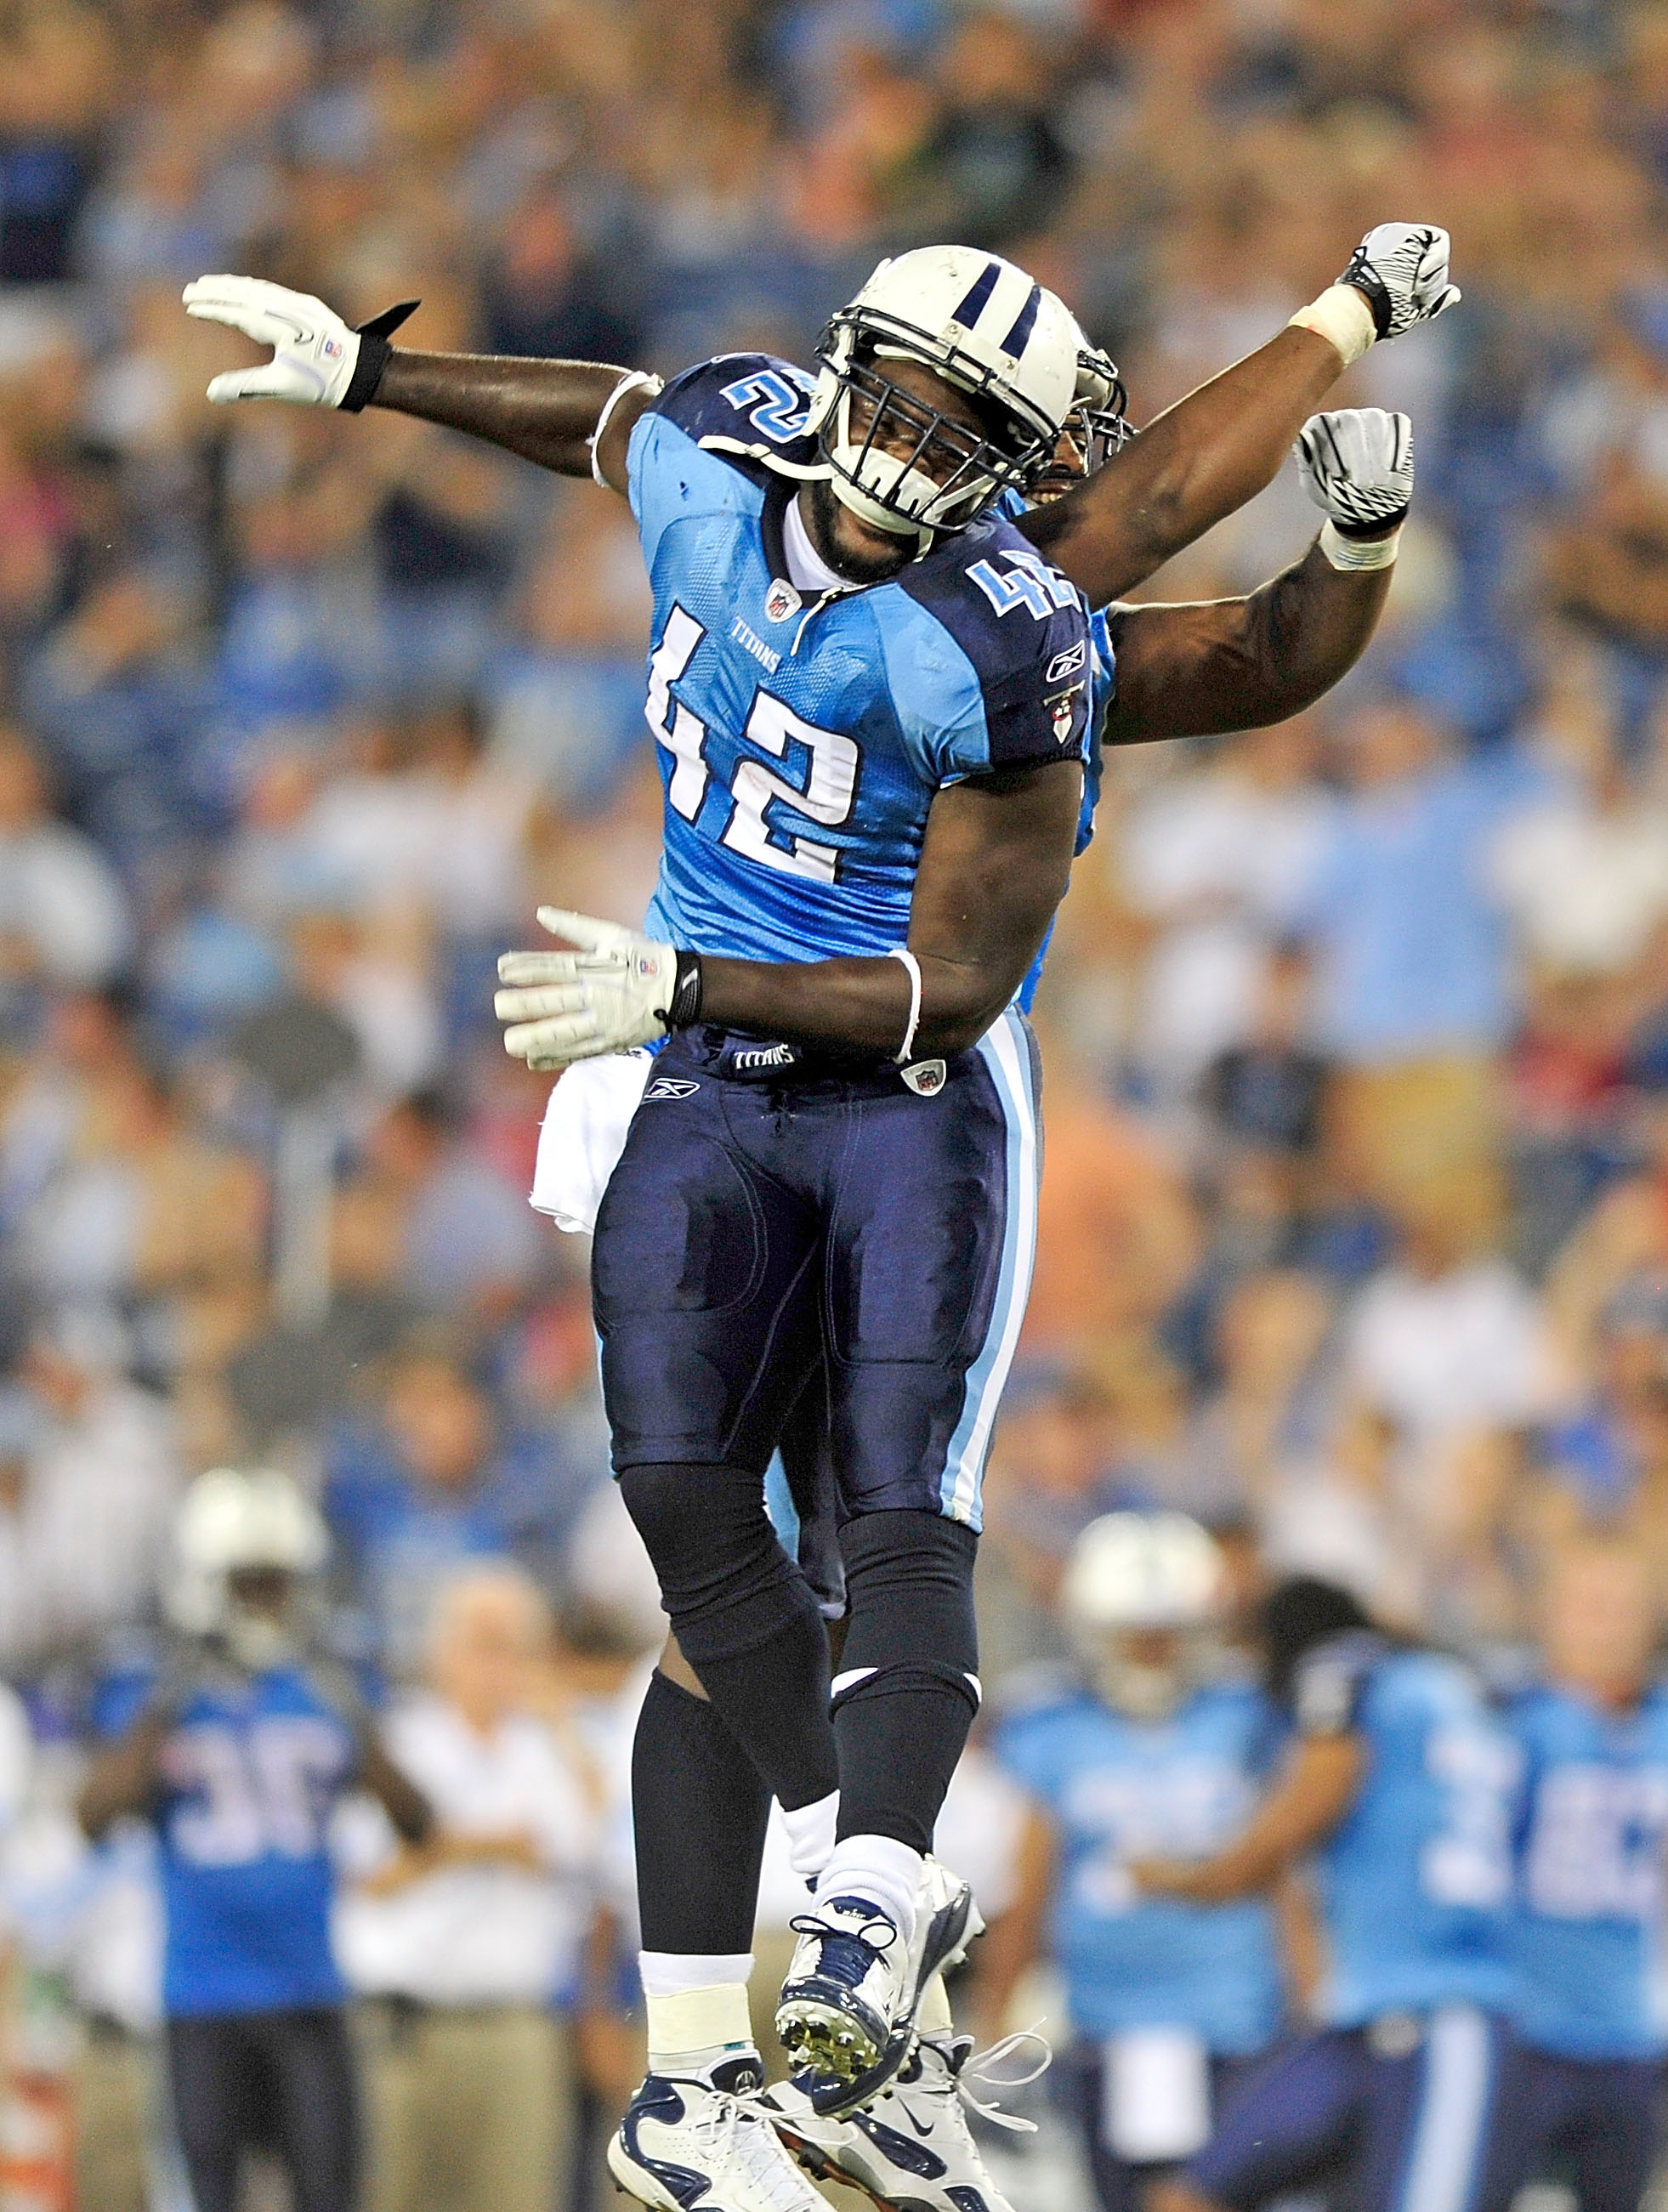 NASHVILLE, TN - SEPTEMBER 02:  LeGarrette Blount #42 of the Tennessee Titans celebrates with teammate Fernando Velasco #61 after scoring a touchdown against the New Orleans Saints during an exhibition game at LP Field on September 2, 2010 in Nashville, Te